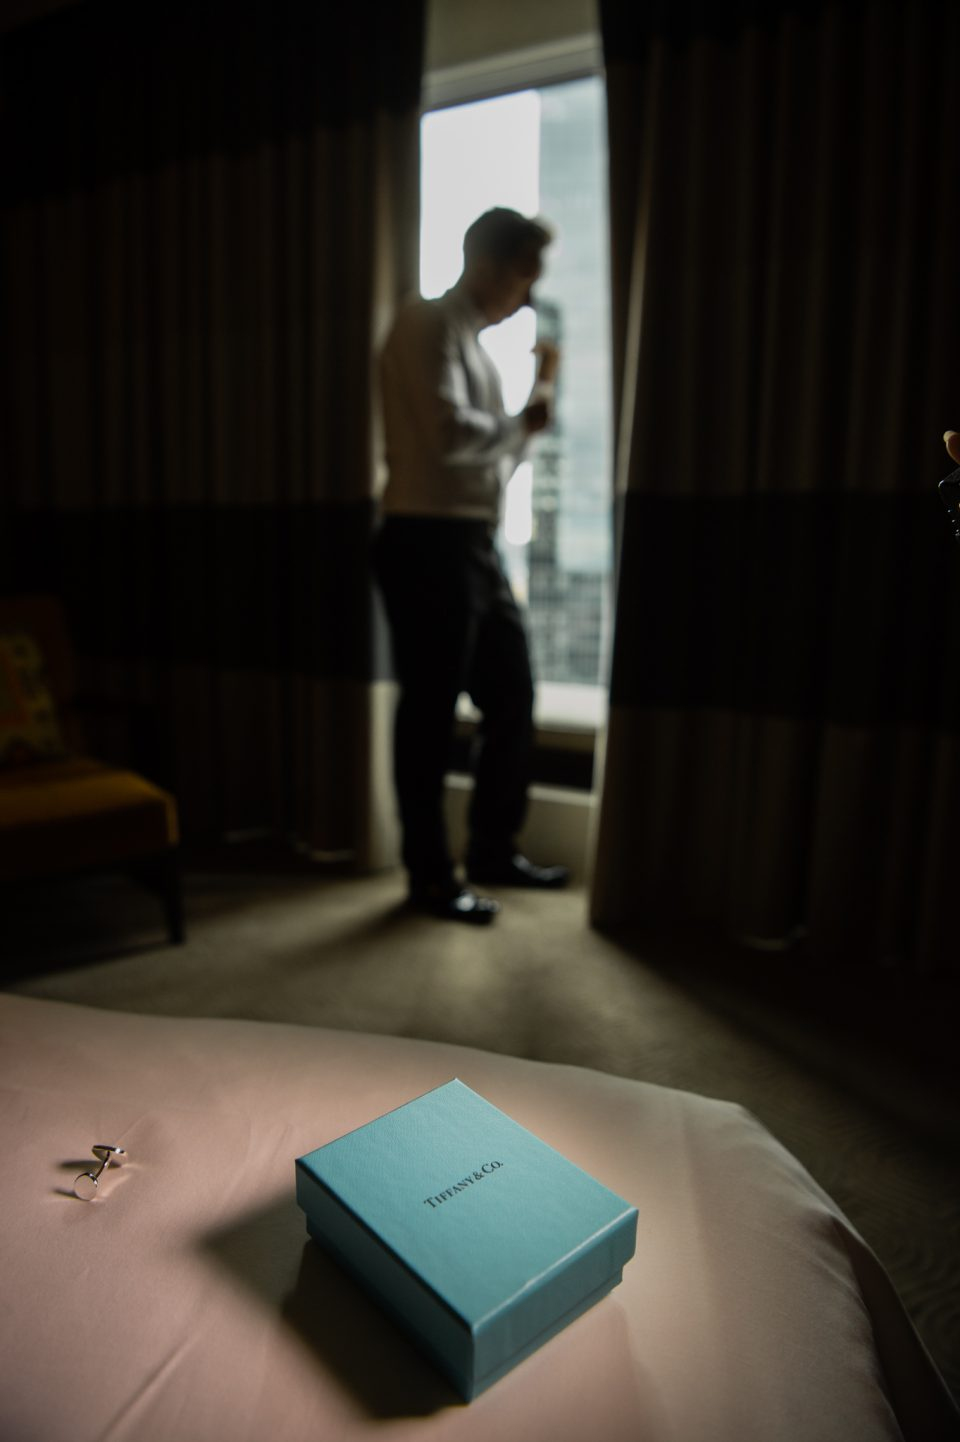 Tiffany & Co. box and cufflink sit on bed in foreground with Groom standing at window doing up cufflink in background